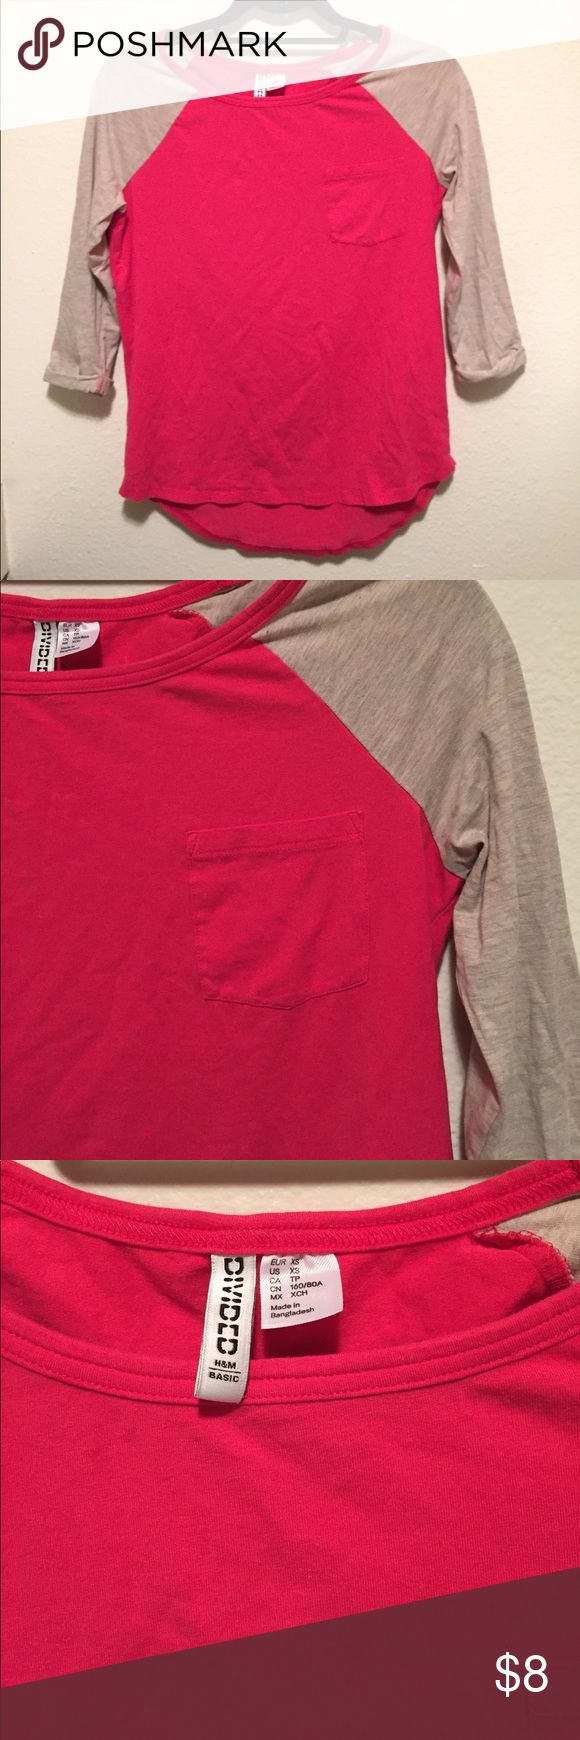 3/4 Baseball T-Shirt This 3/4 baseball t-shirt is perfect year round! The eye popping pink of the shirt's body is complemented very nicely by the neutral tan arms! No signs of wear. *Ships next day* Divided Tops